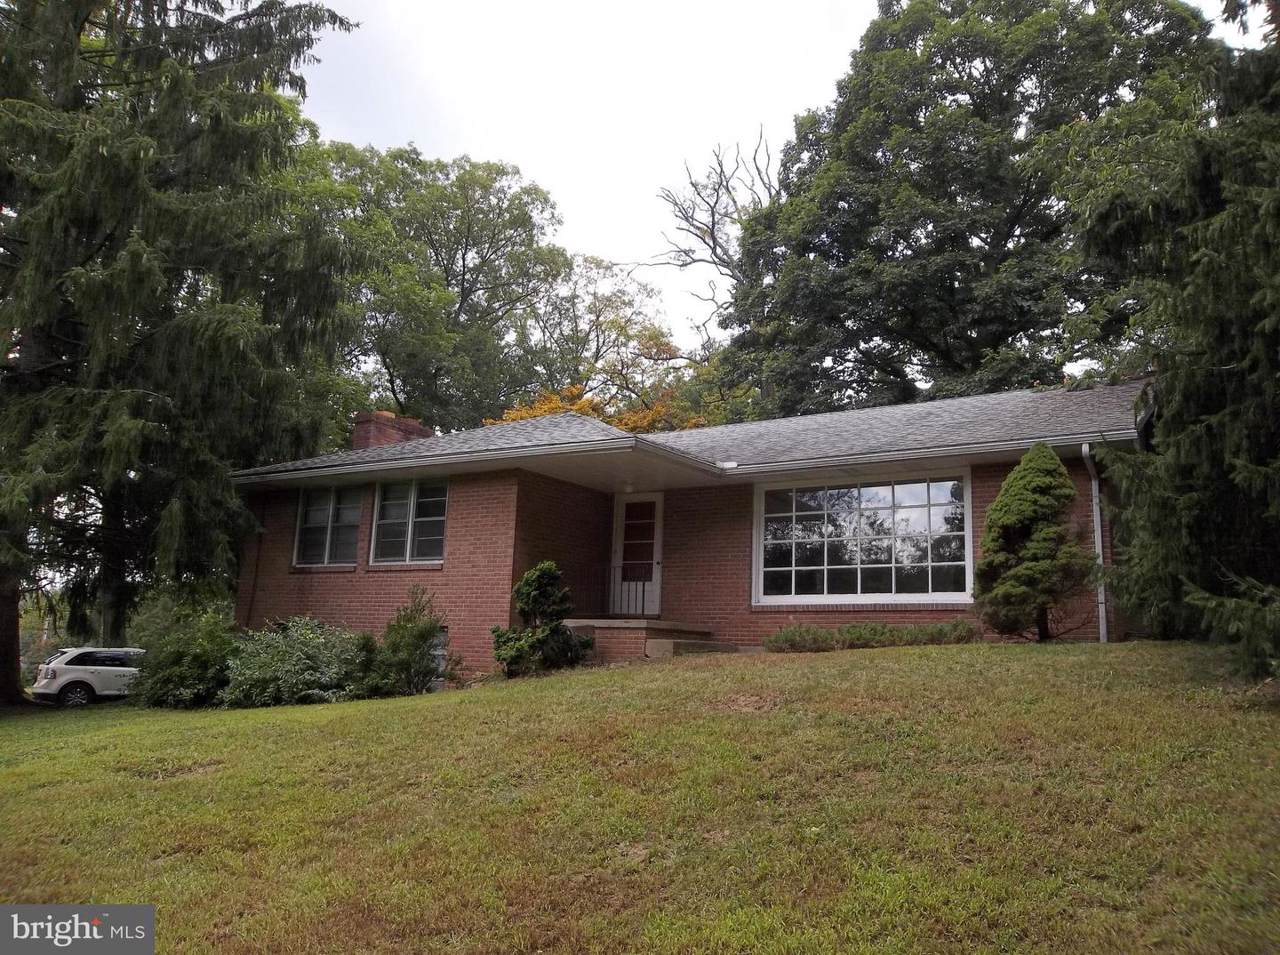 13001 Lewis Heights Drive - Photo 1